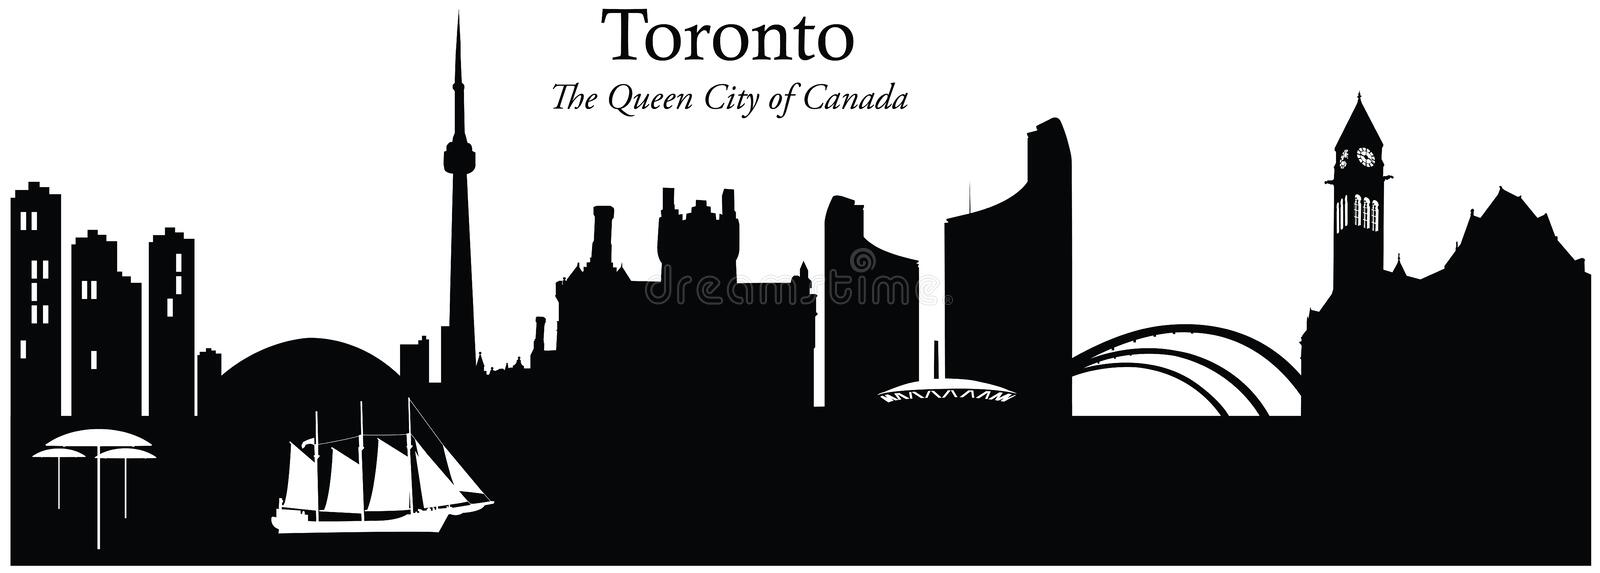 Toronto, Canada stock illustration